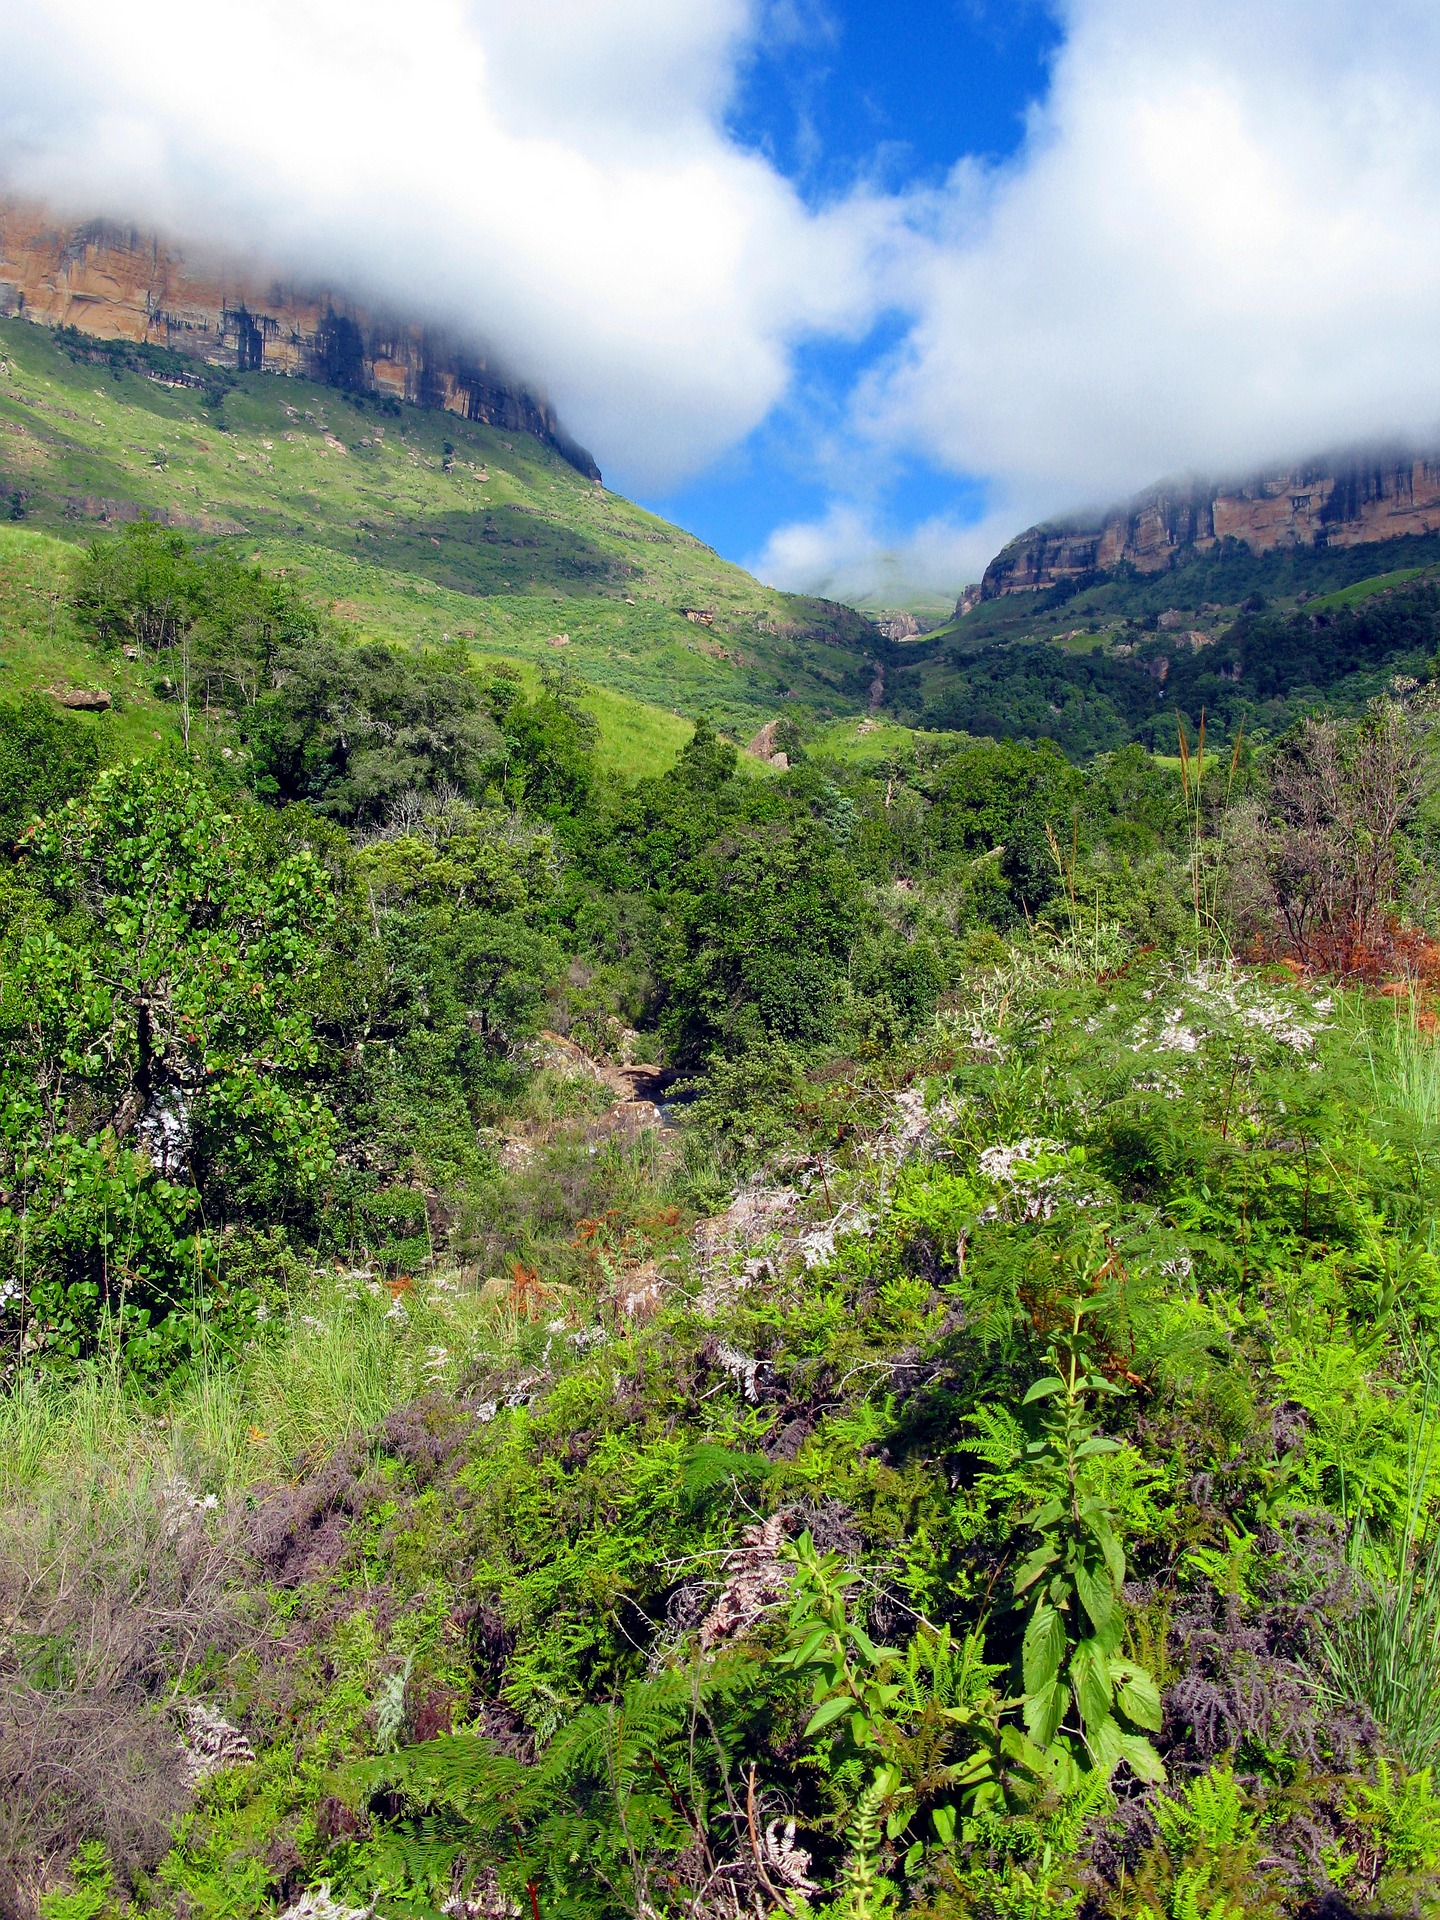 drakensberg-mountains-85659_1920